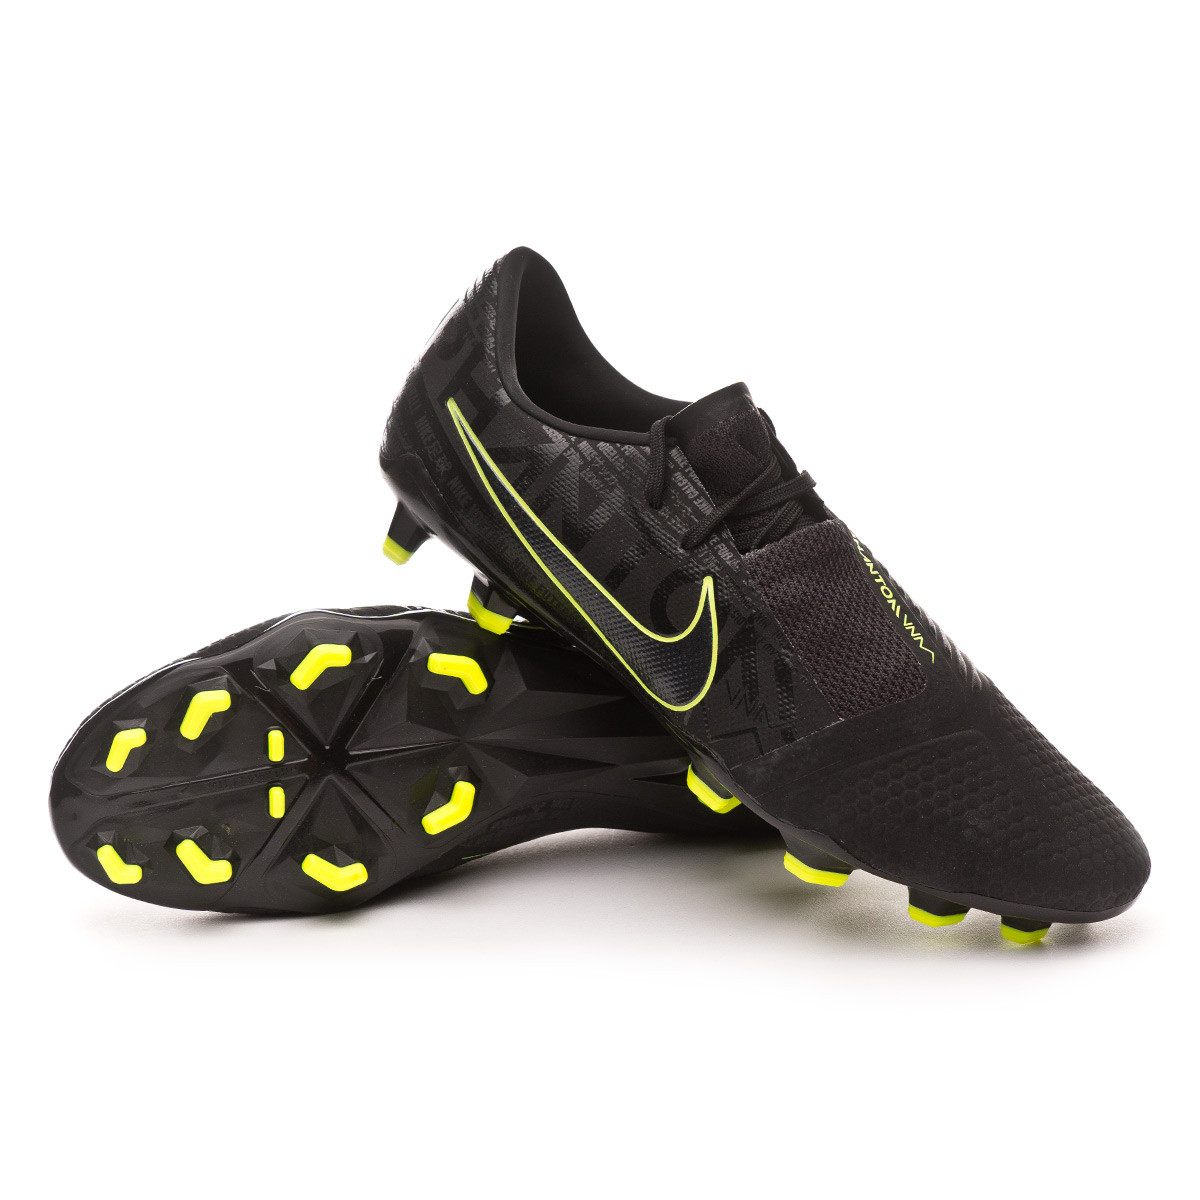 official photos cb437 dd67b Bota Phantom Venom Pro FG Black-Volt